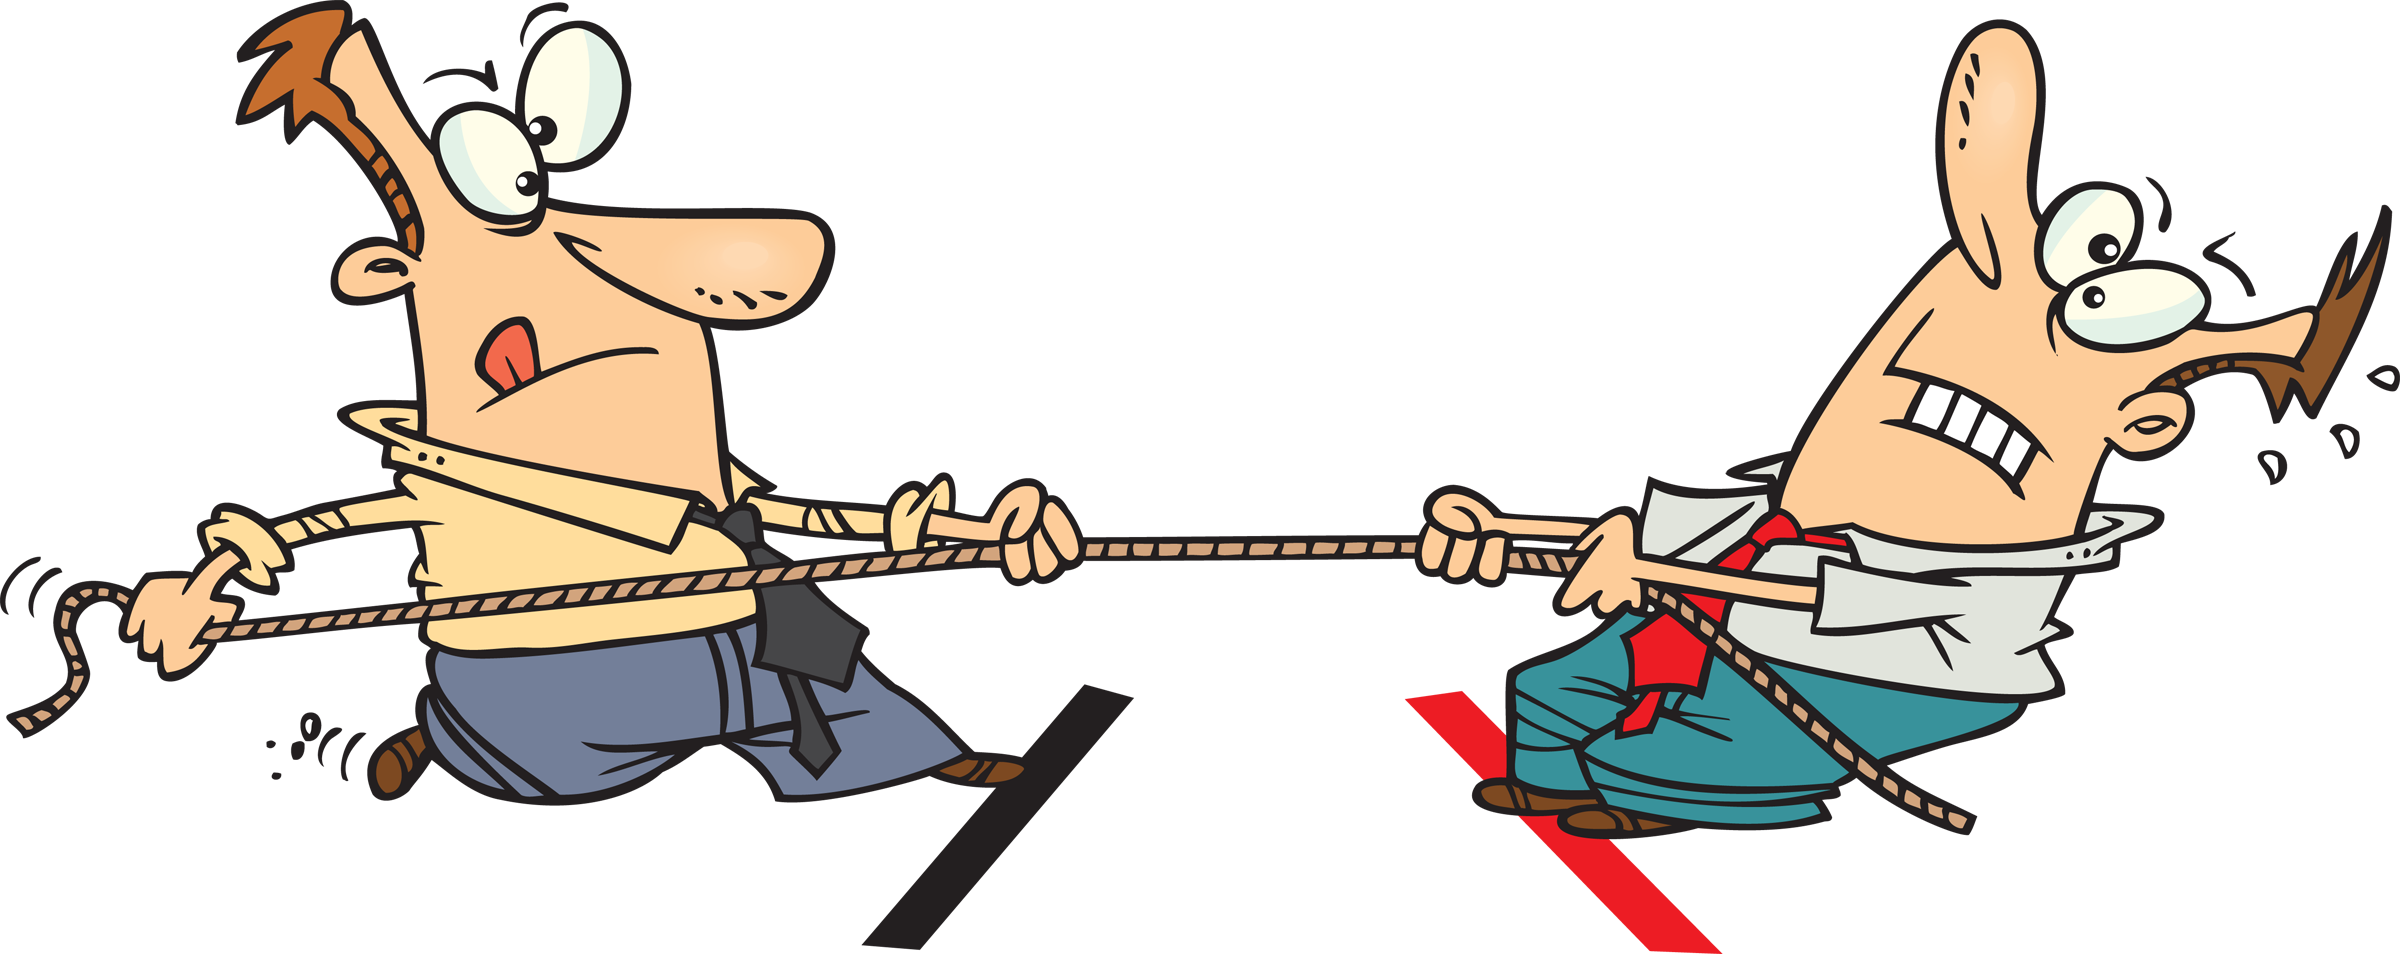 Semana 14: Desarrollo de Habi - Tug Of War Clip Art